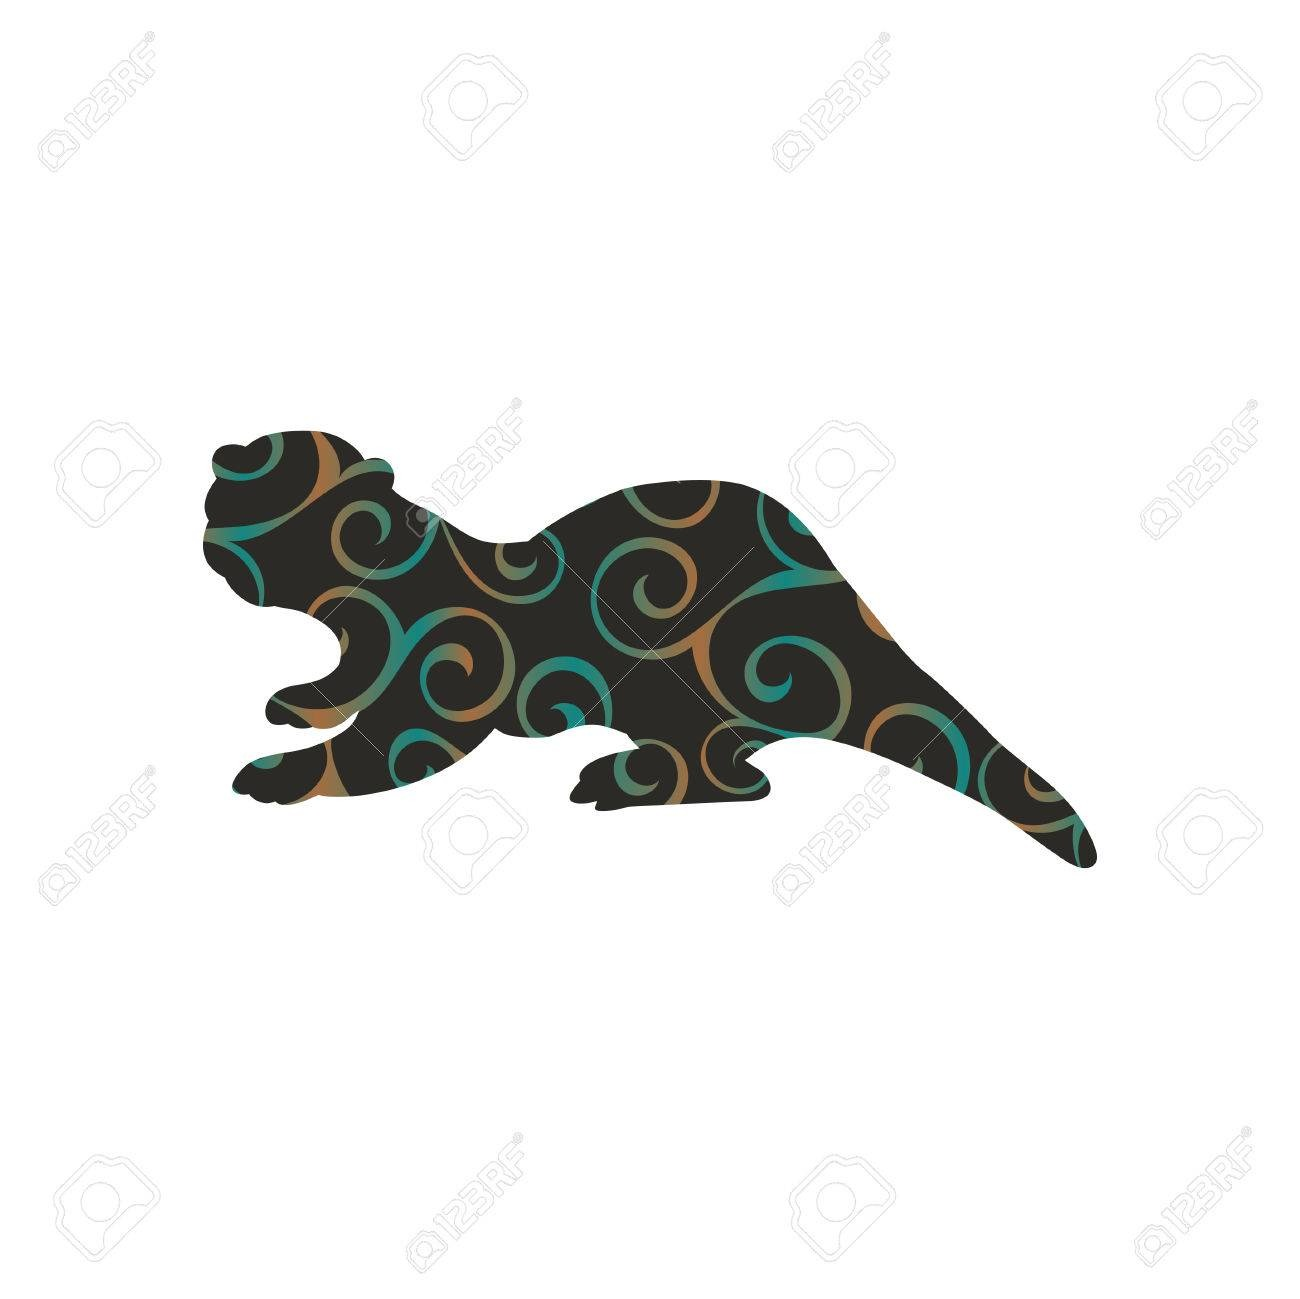 Otter Mammal Color Silhouette Animal Royalty Free Cliparts